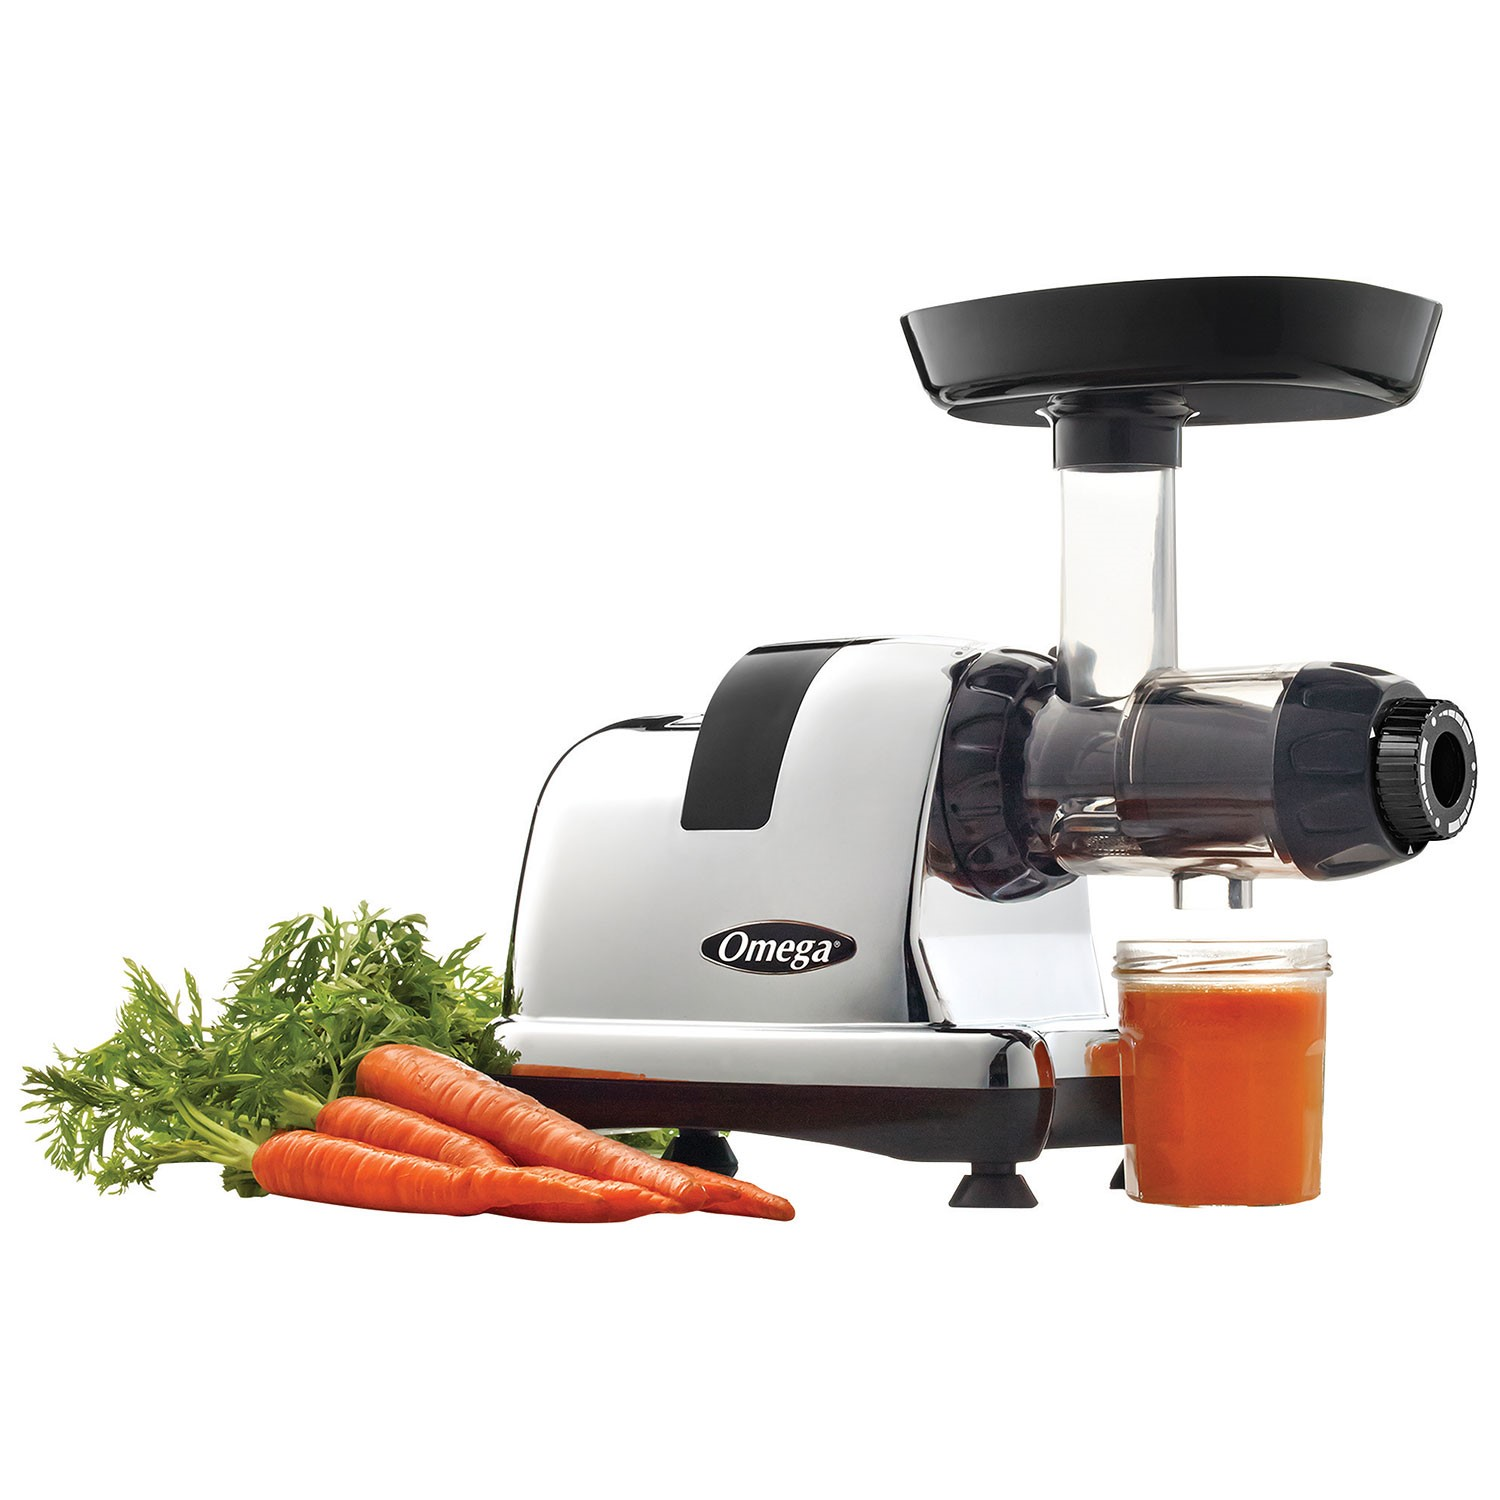 Difference Entre Slow Juicer Et Centrifugeuse : Centrifugeuse et extracteur ? jus lent - Blogue Best Buy